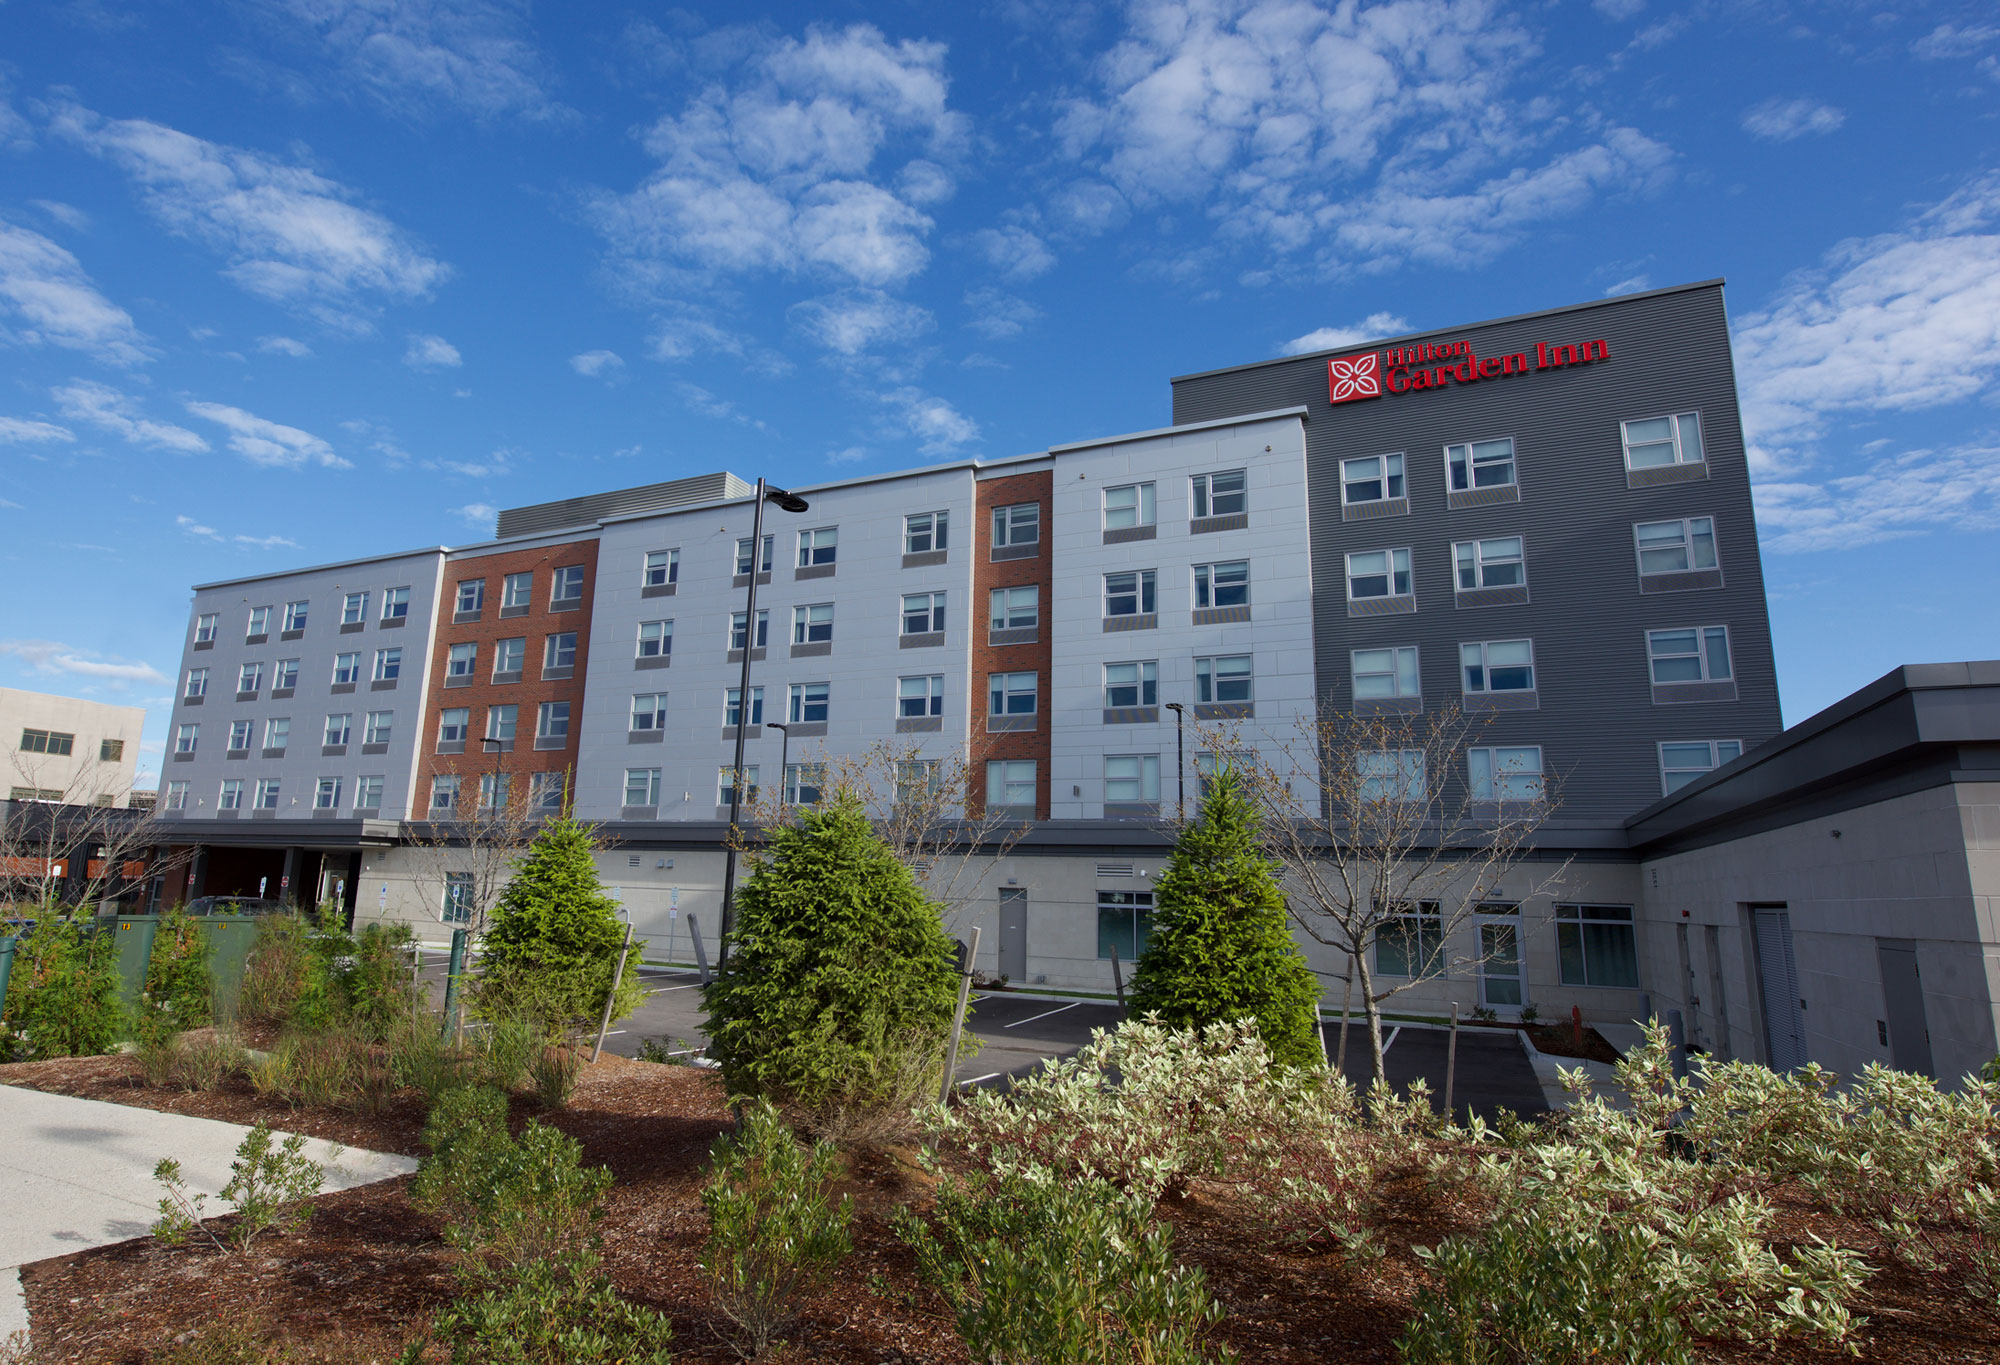 Cei materials assists architects in hilton worthy of new england patriots fans news press for Hilton garden inn patriot place